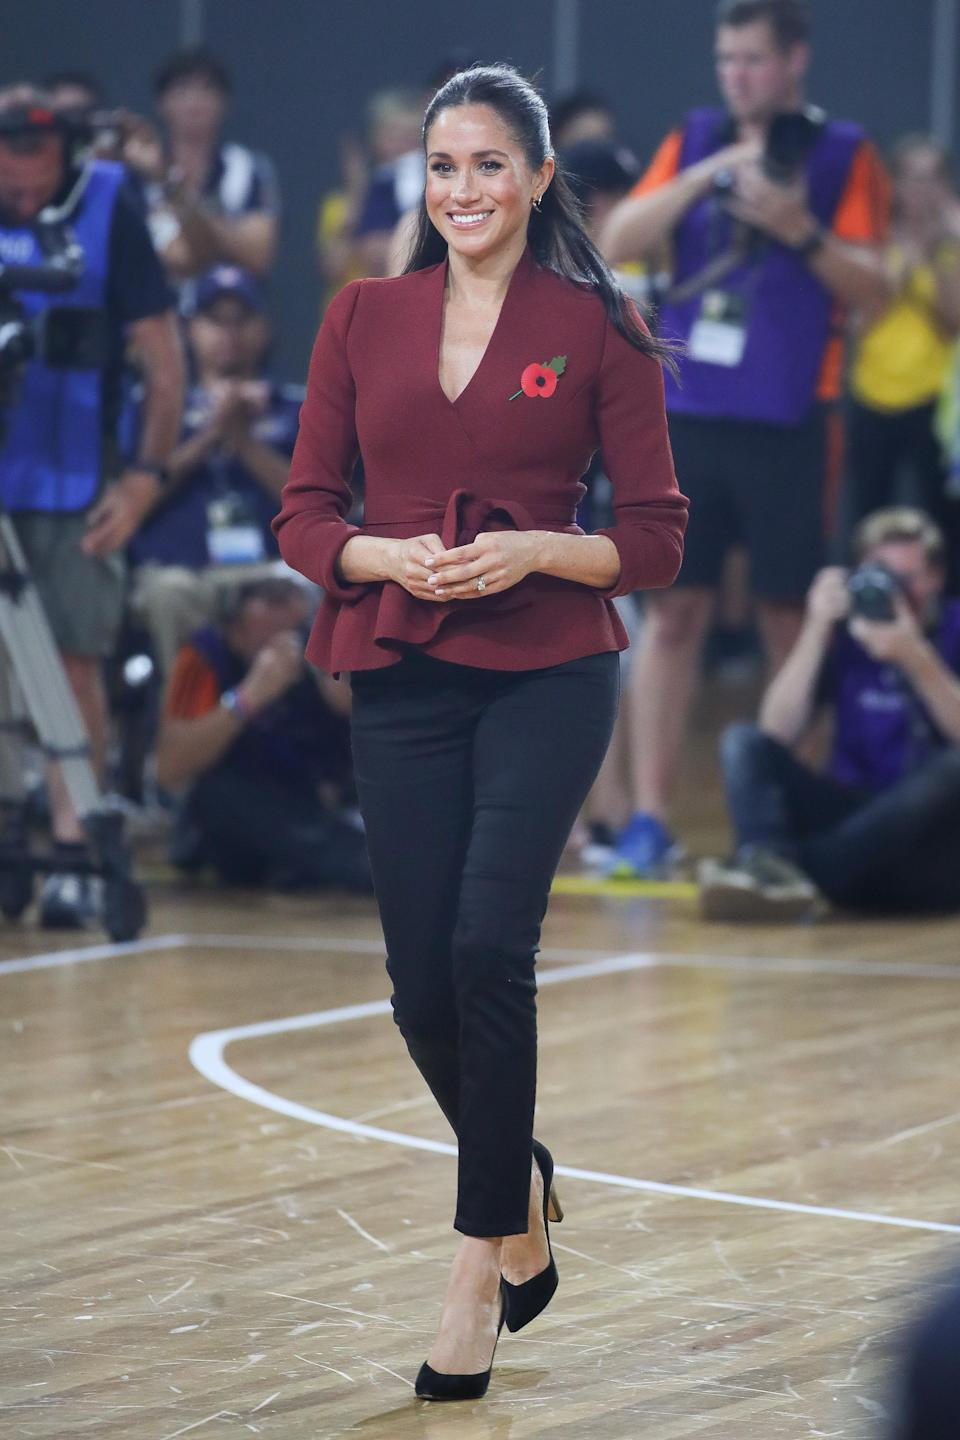 """<p>For the 2018 Invictus Games wheelchair basketball finale, Meghan wore a £303 plum-hued jacket by Aussie label <a rel=""""nofollow noopener"""" href=""""https://us.scanlantheodore.com/collections/w18-rwt/products/crepeknitwrapjacketgarnet"""" target=""""_blank"""" data-ylk=""""slk:Scanlan Theodore"""" class=""""link rapid-noclick-resp"""">Scanlan Theodore</a> with skinny jeans. <em>[Photo: Getty]</em> </p>"""